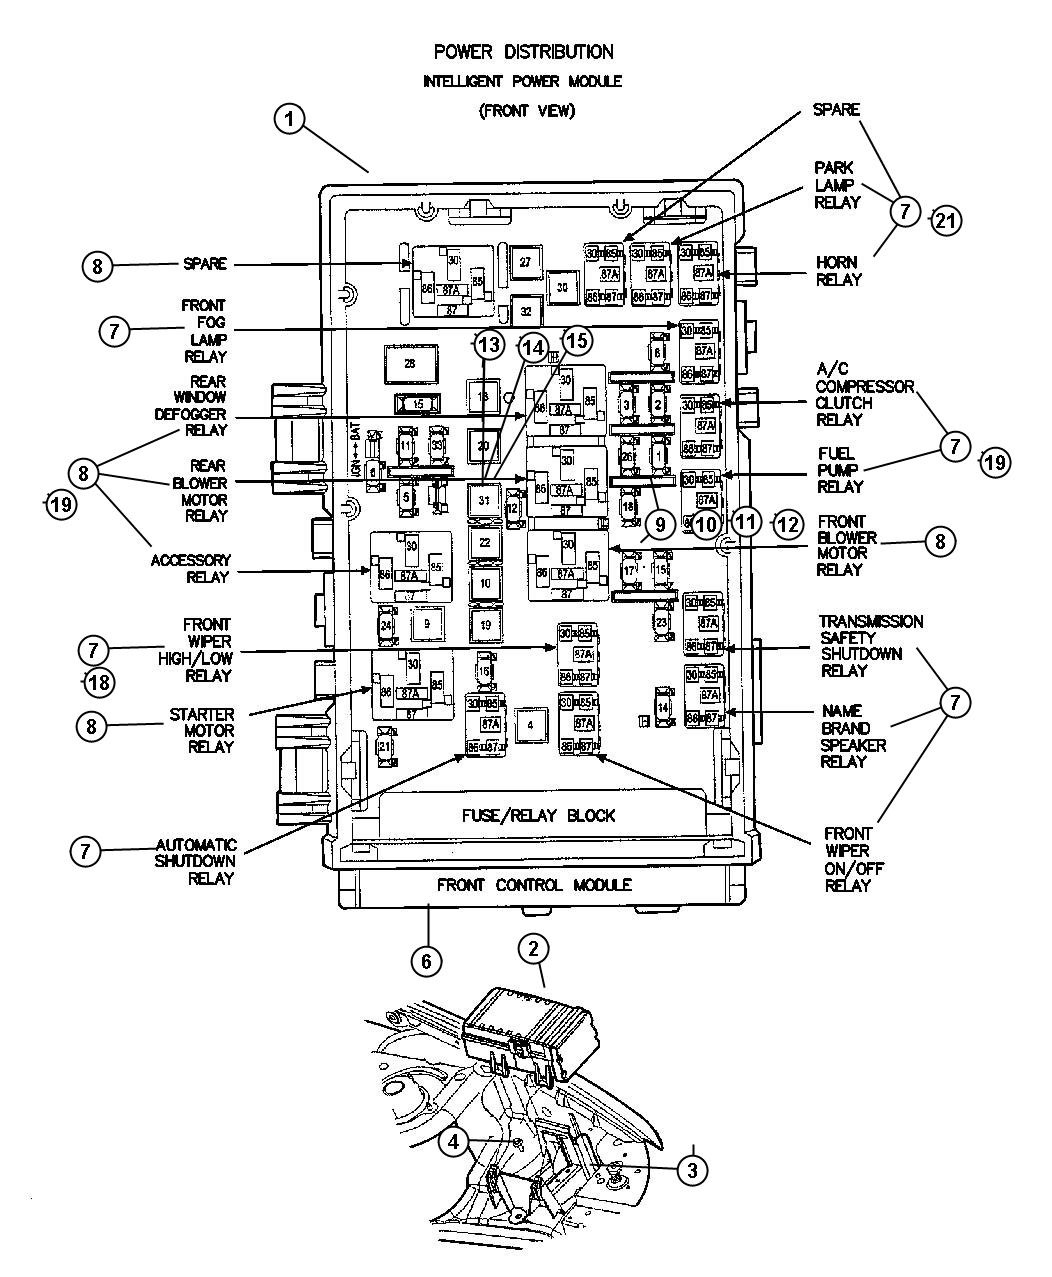 1998 dodge dakota manual transmission parts diagram 1998